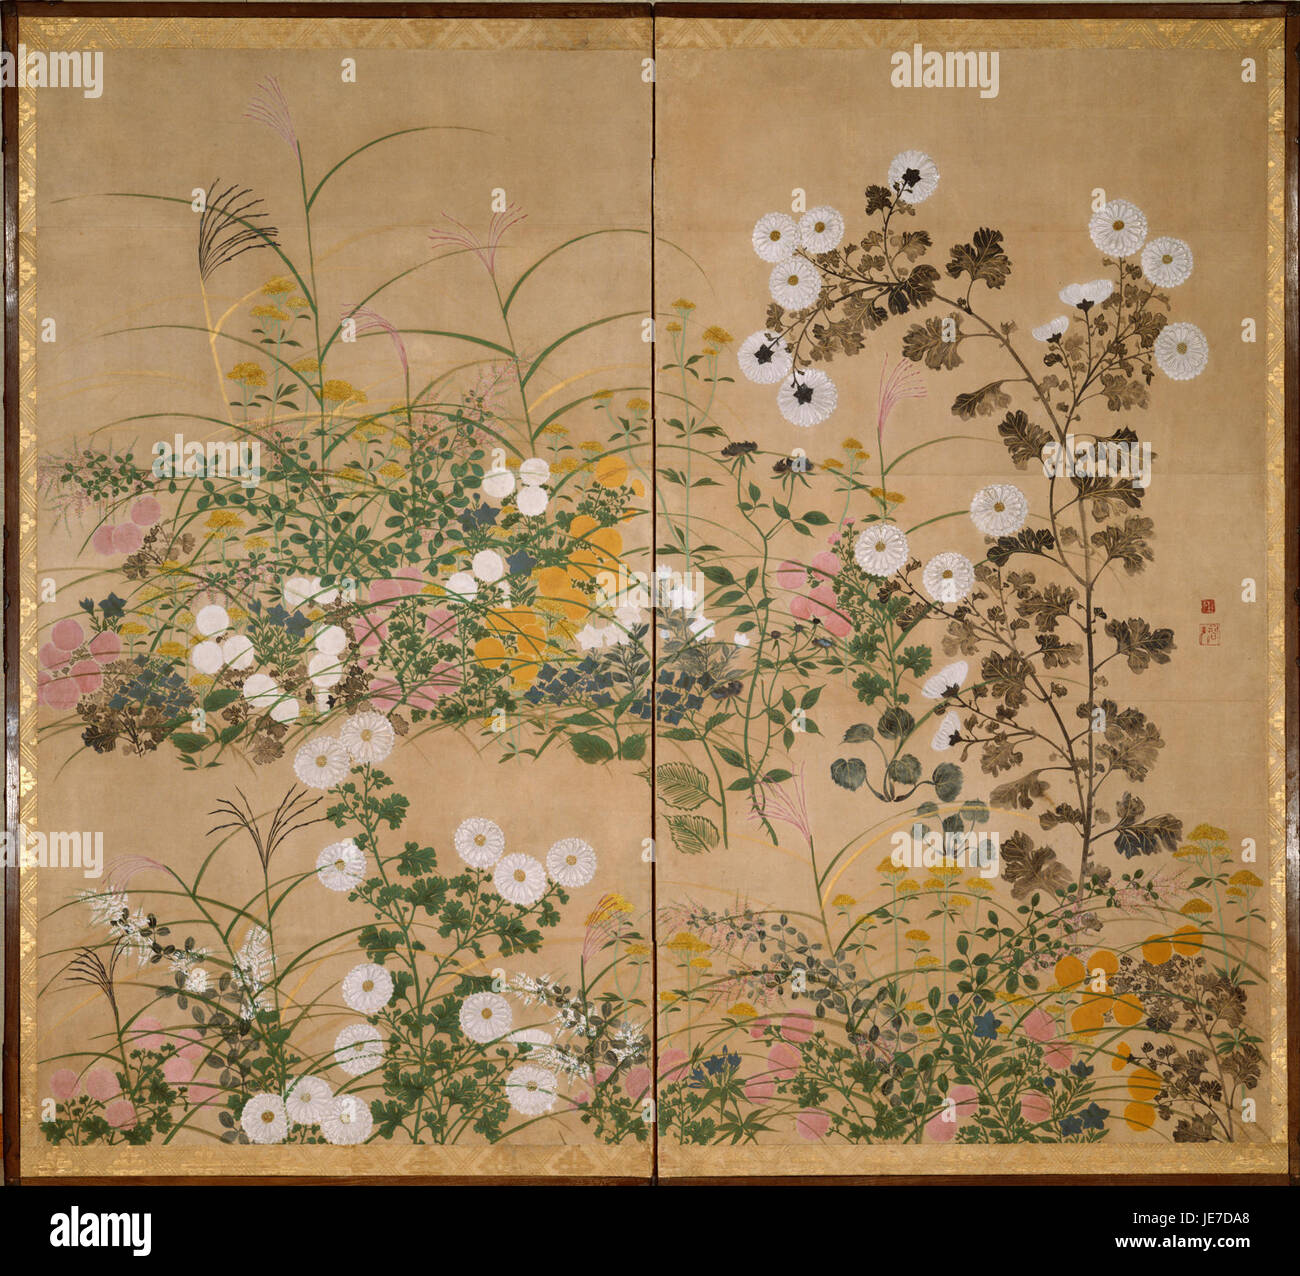 Attributed to Ogata Korin - Important Art Object Flowering Plants in Autumn - - Stock Image